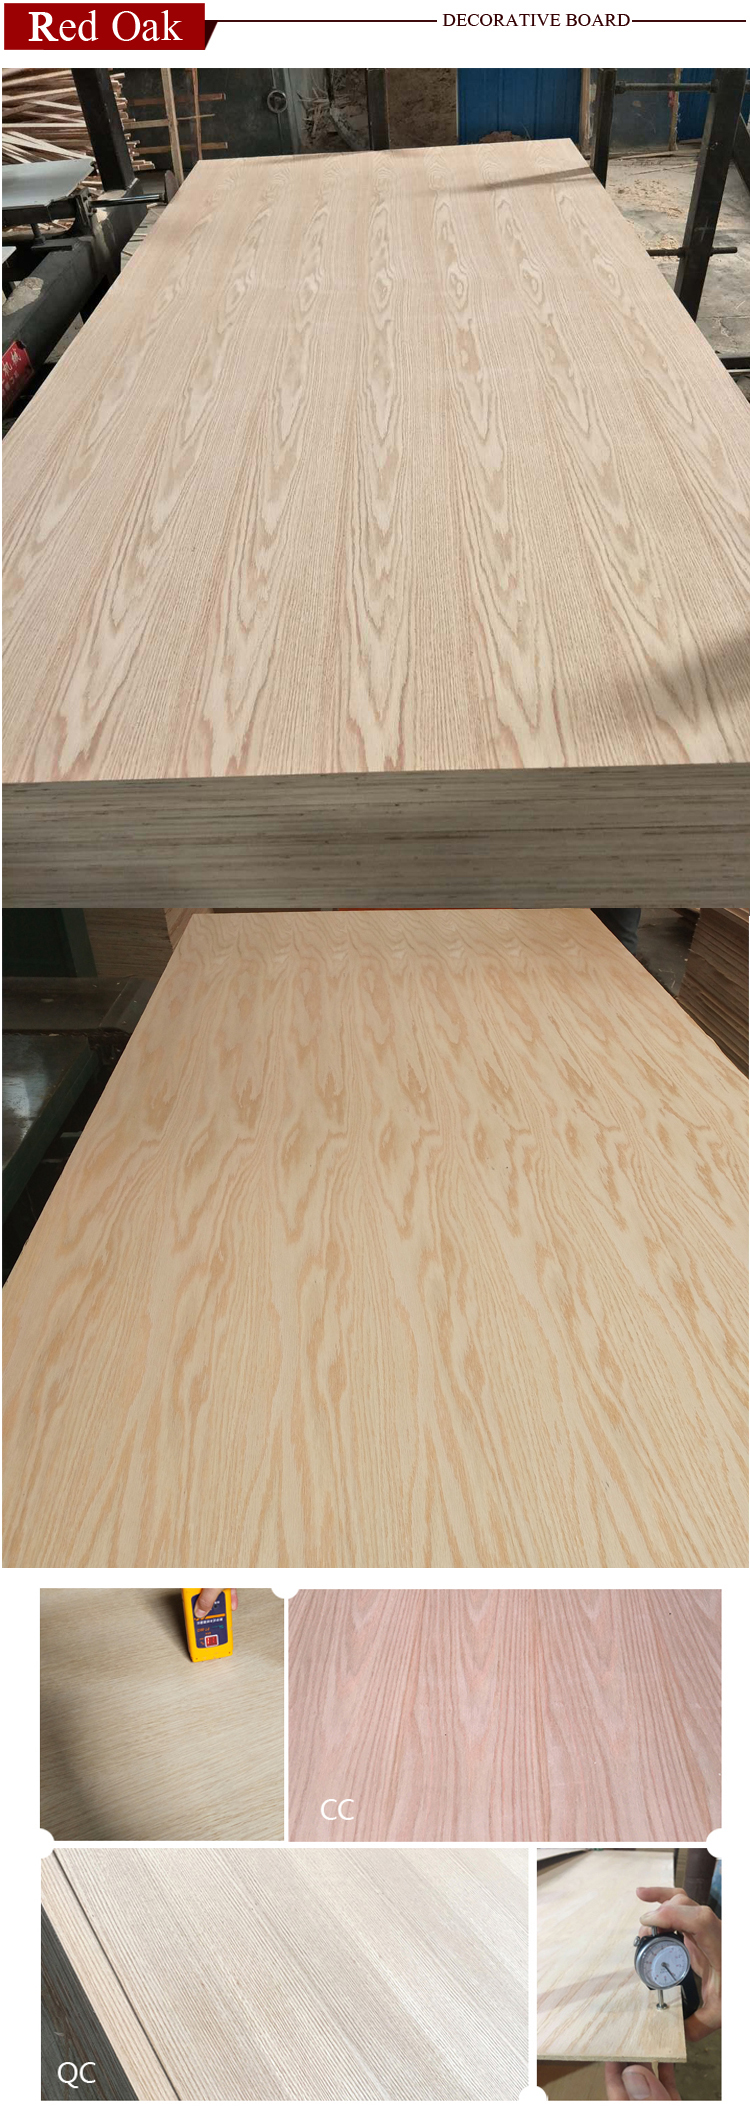 Red oak veneered mdf for furniture